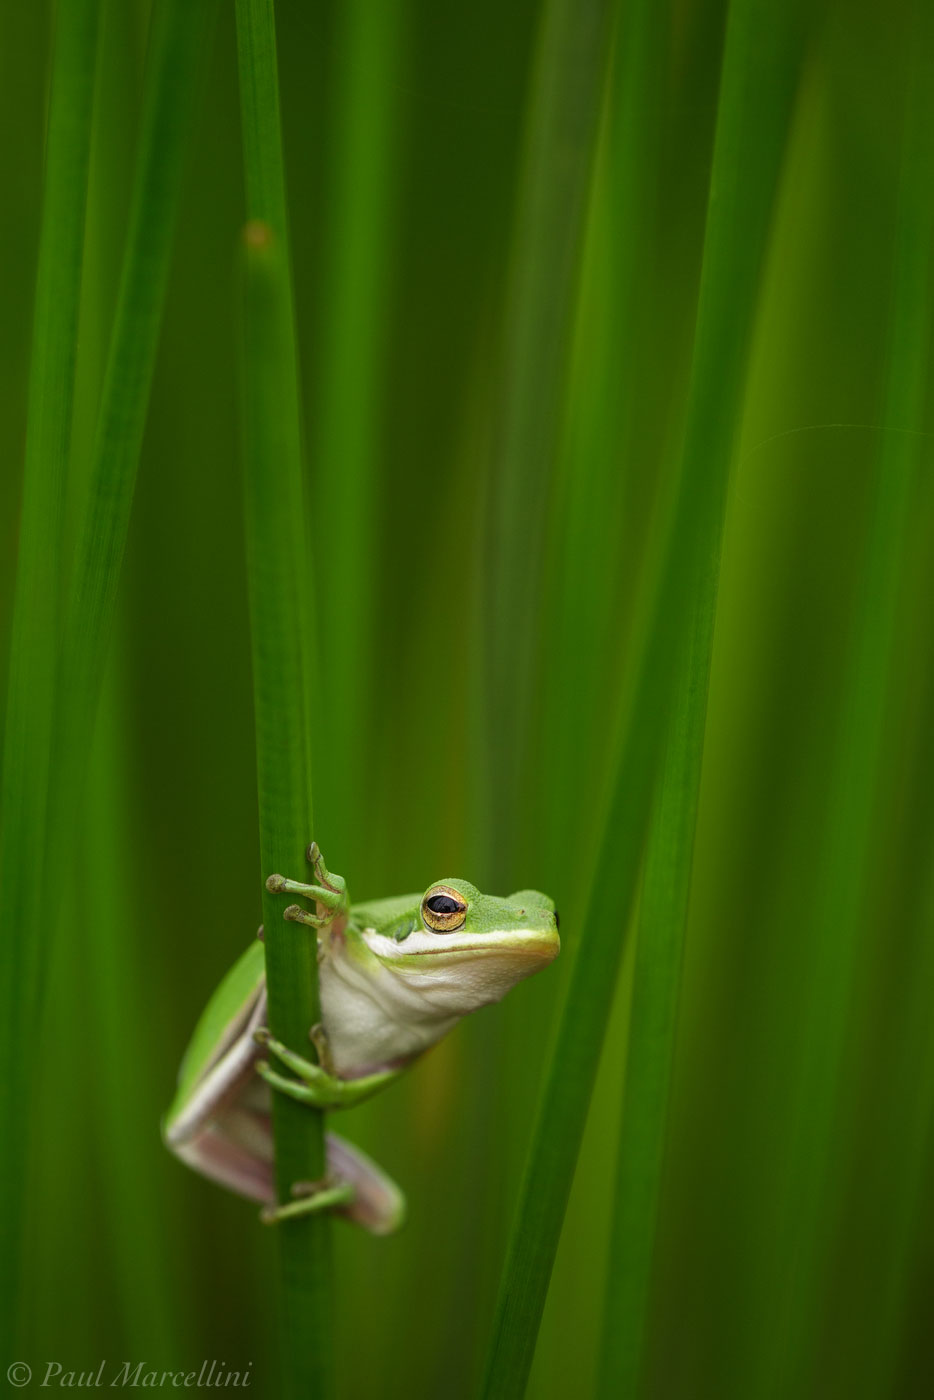 Green Tree Frog, Everglades National Park, Florida, photo